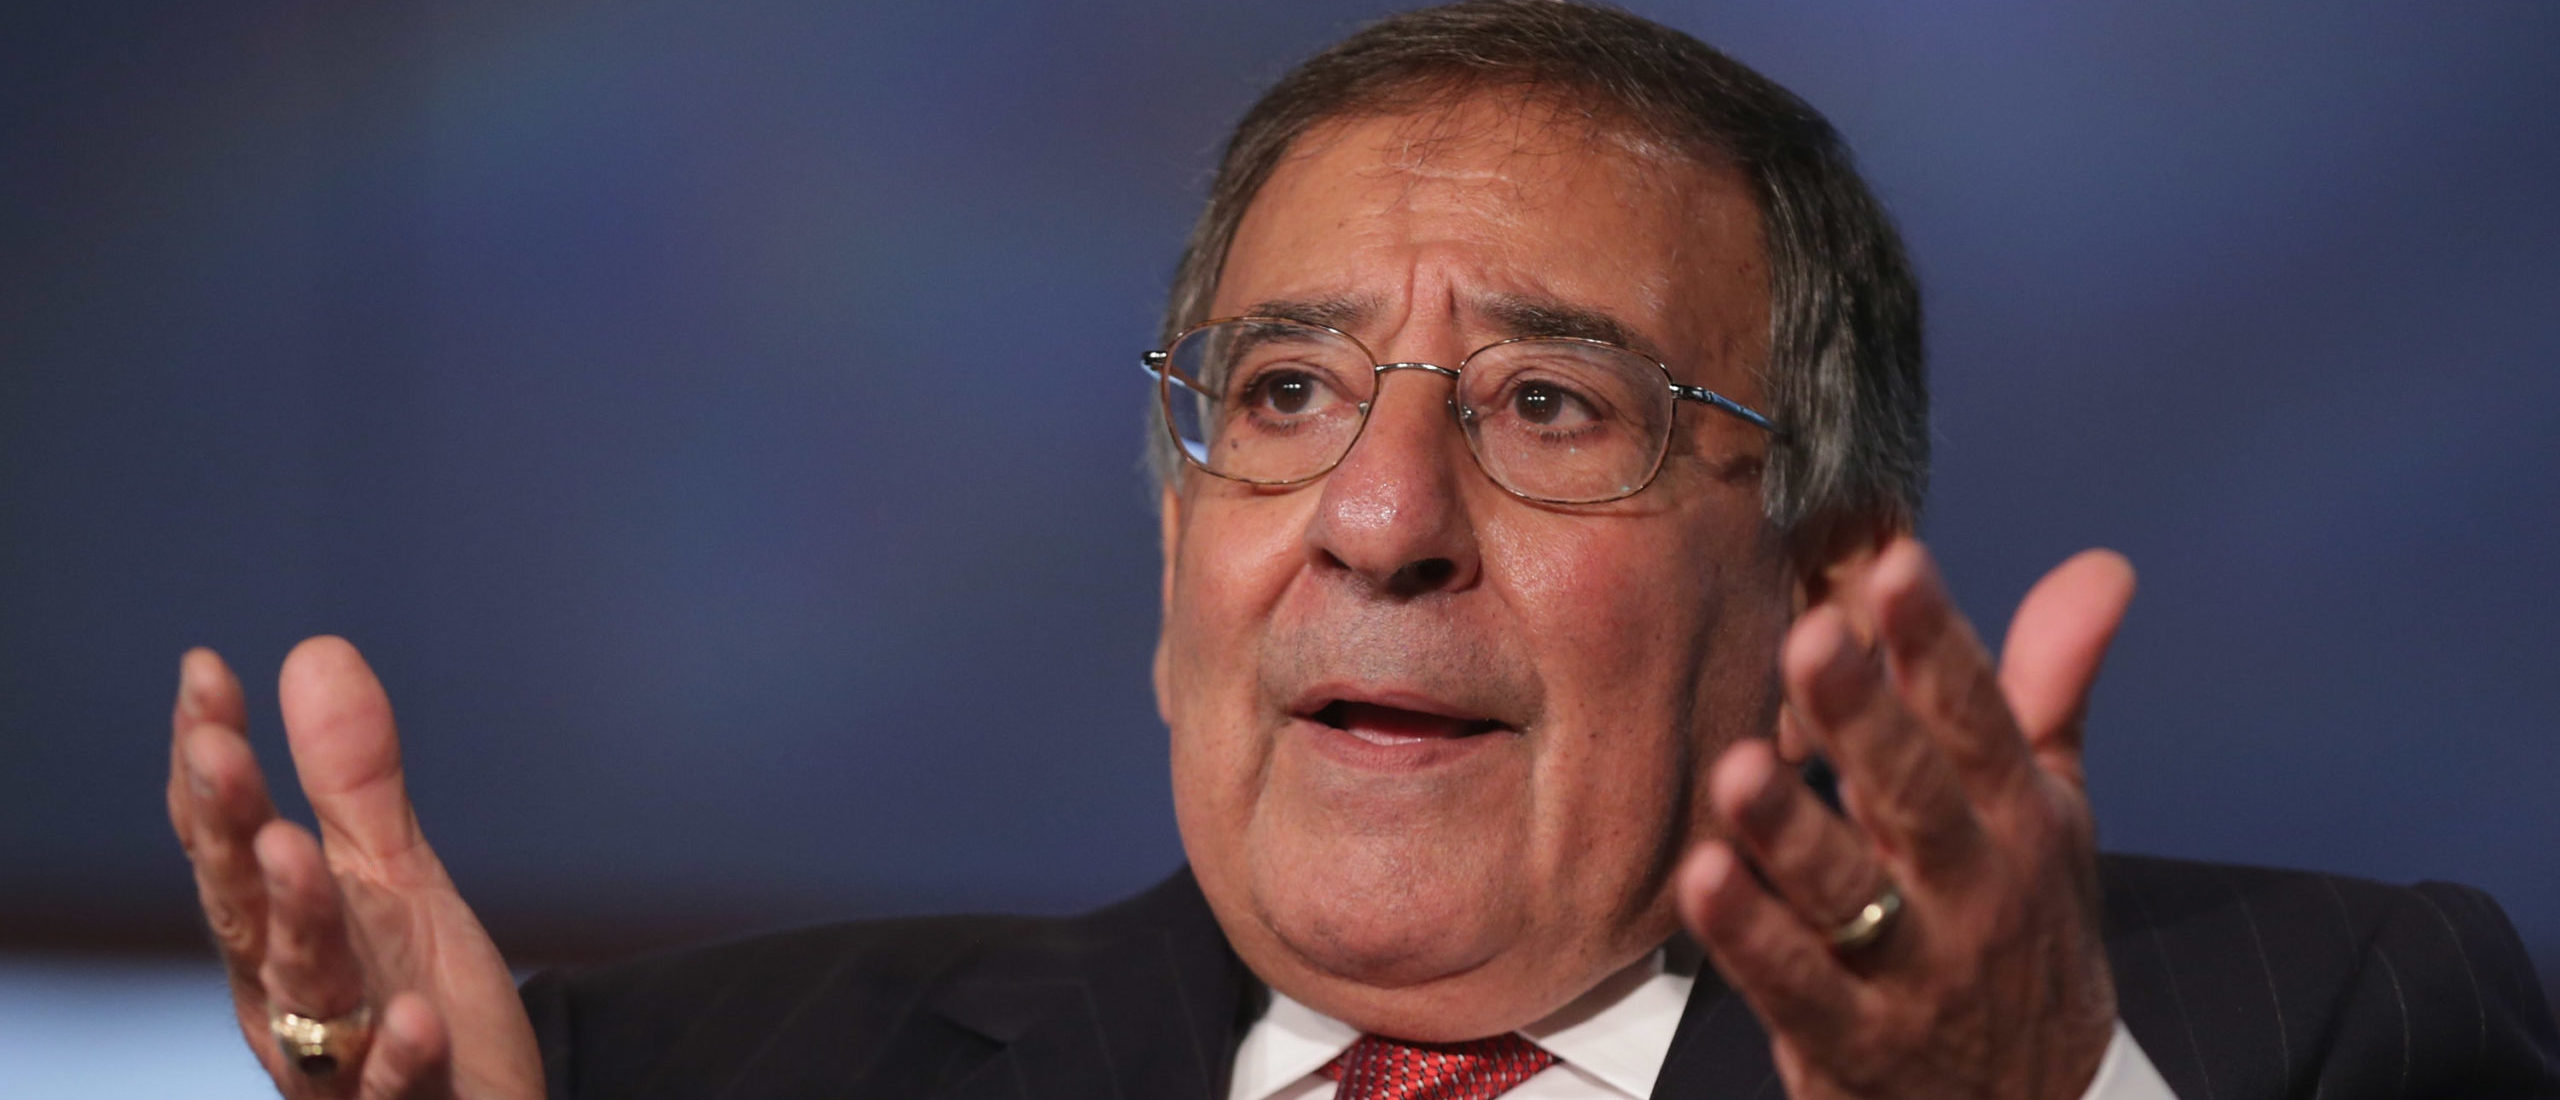 Former Secretary of Defense and director of the Central Intelligence Agency Leon Panetta discuss his new book, 'Worthy Fights,' during an event in the Jack Morton Auditorium at George Washington University October 14, 2014 in Washington, DC. (Photo by Chip Somodevilla/Getty Images)